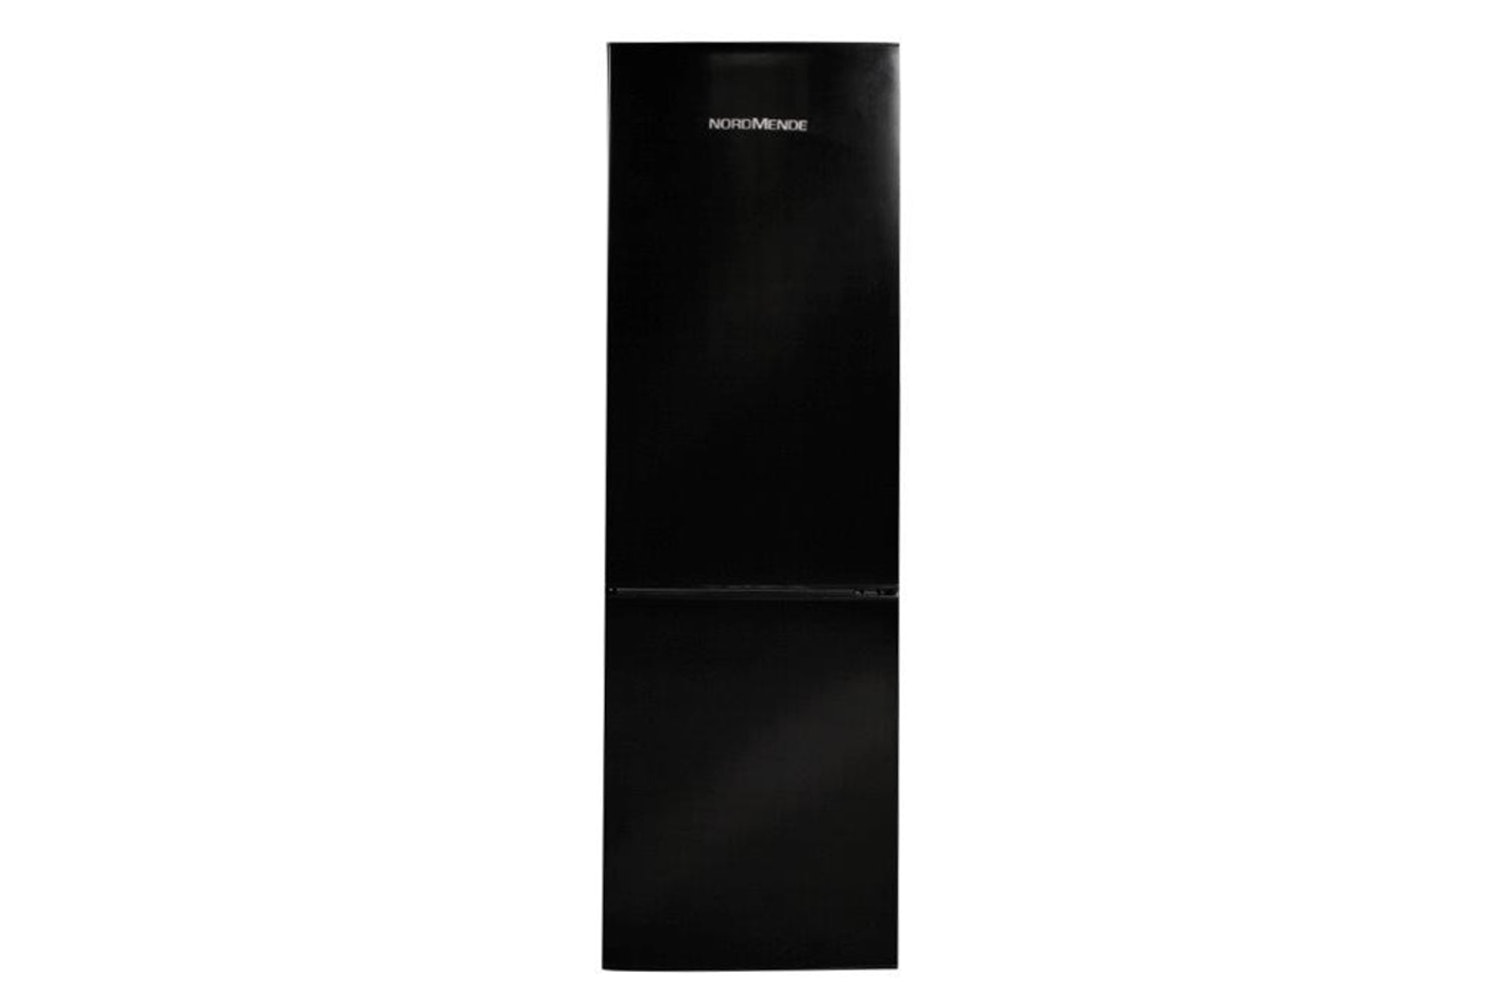 Nordmende Freestanding Fridge Freezer | RFF6040BLA+